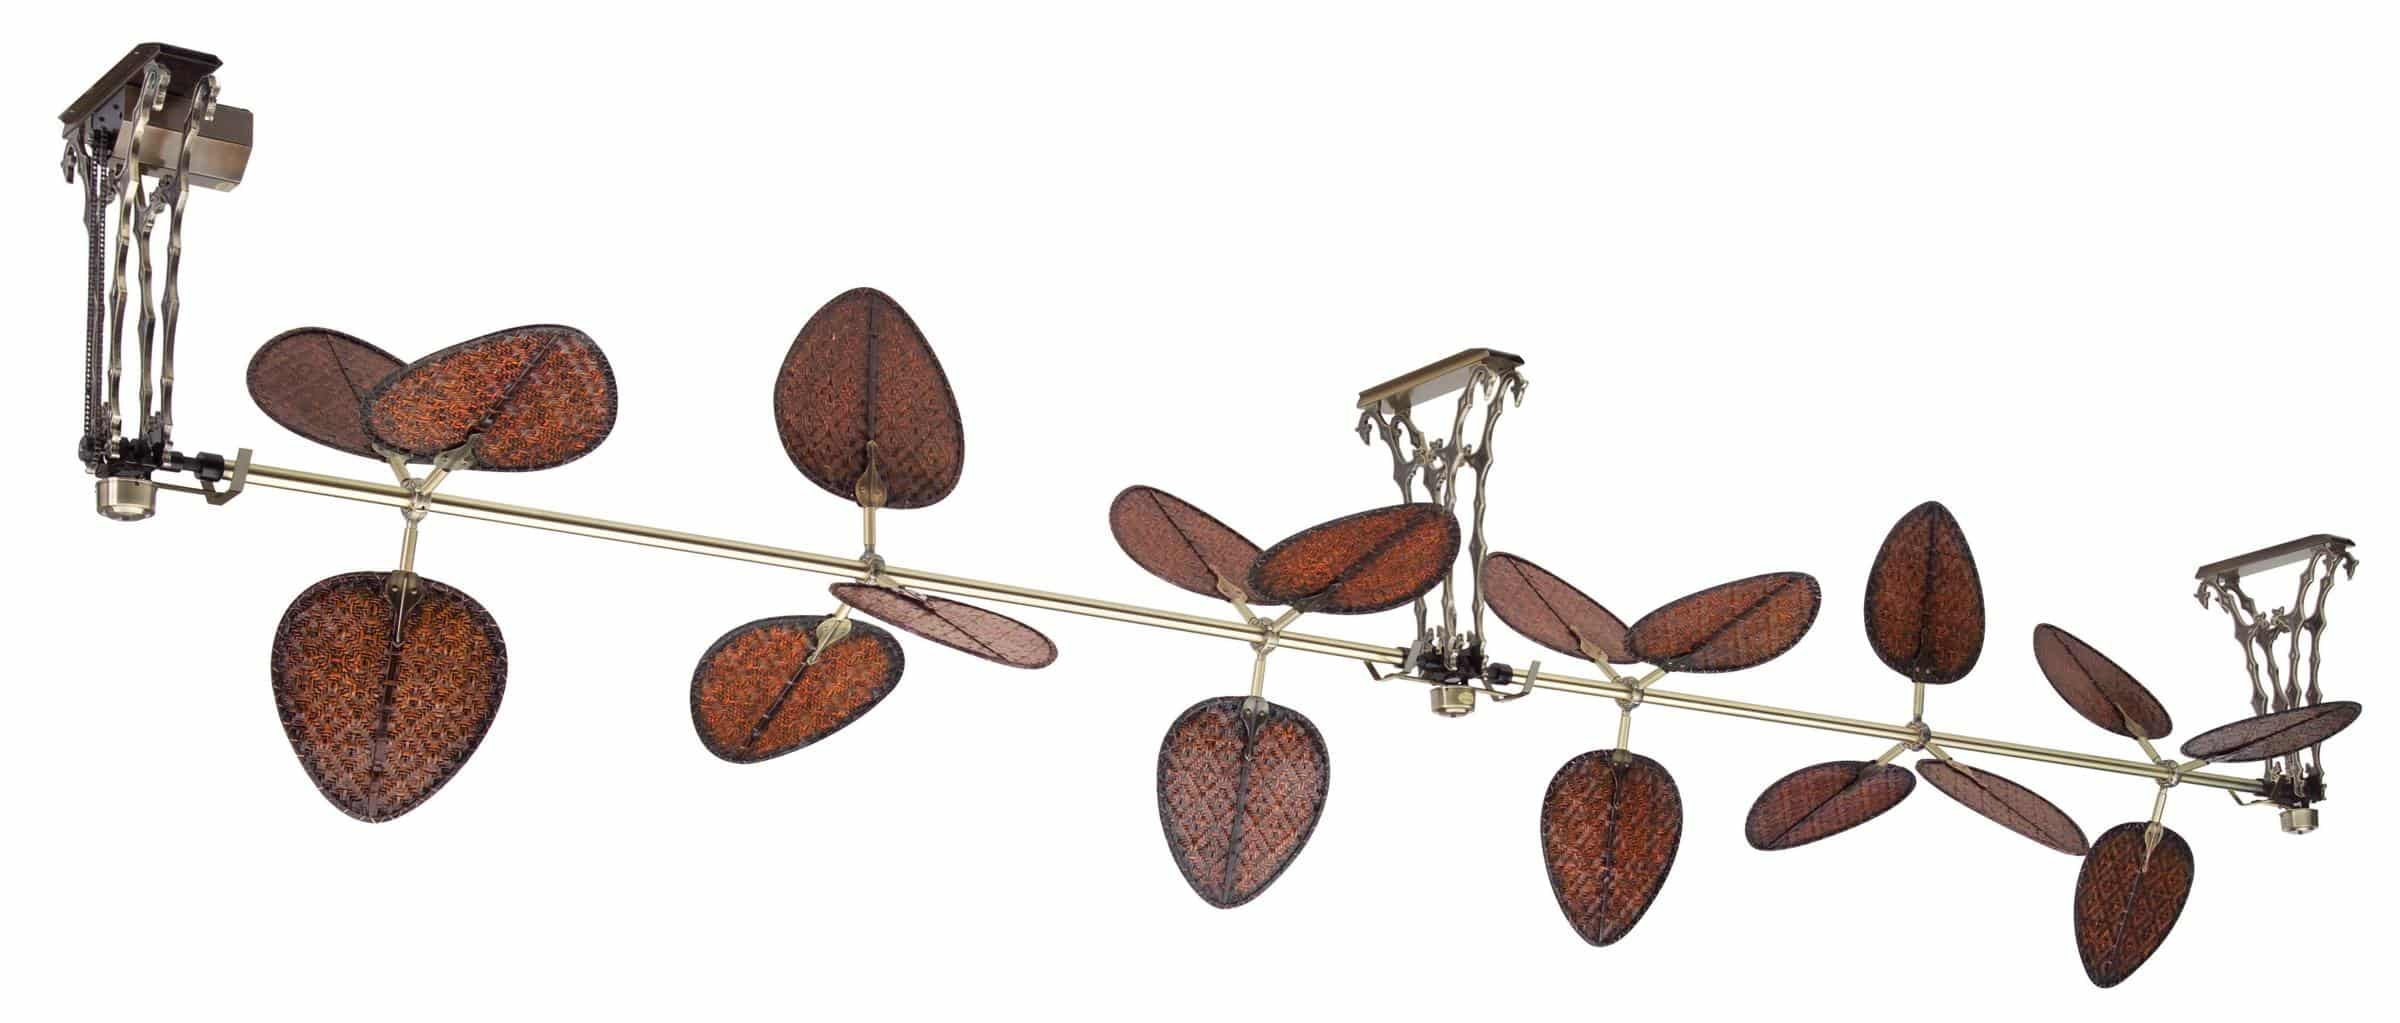 Cool and unique ceiling fans made out of unusual things mutually media source aloadofball Choice Image